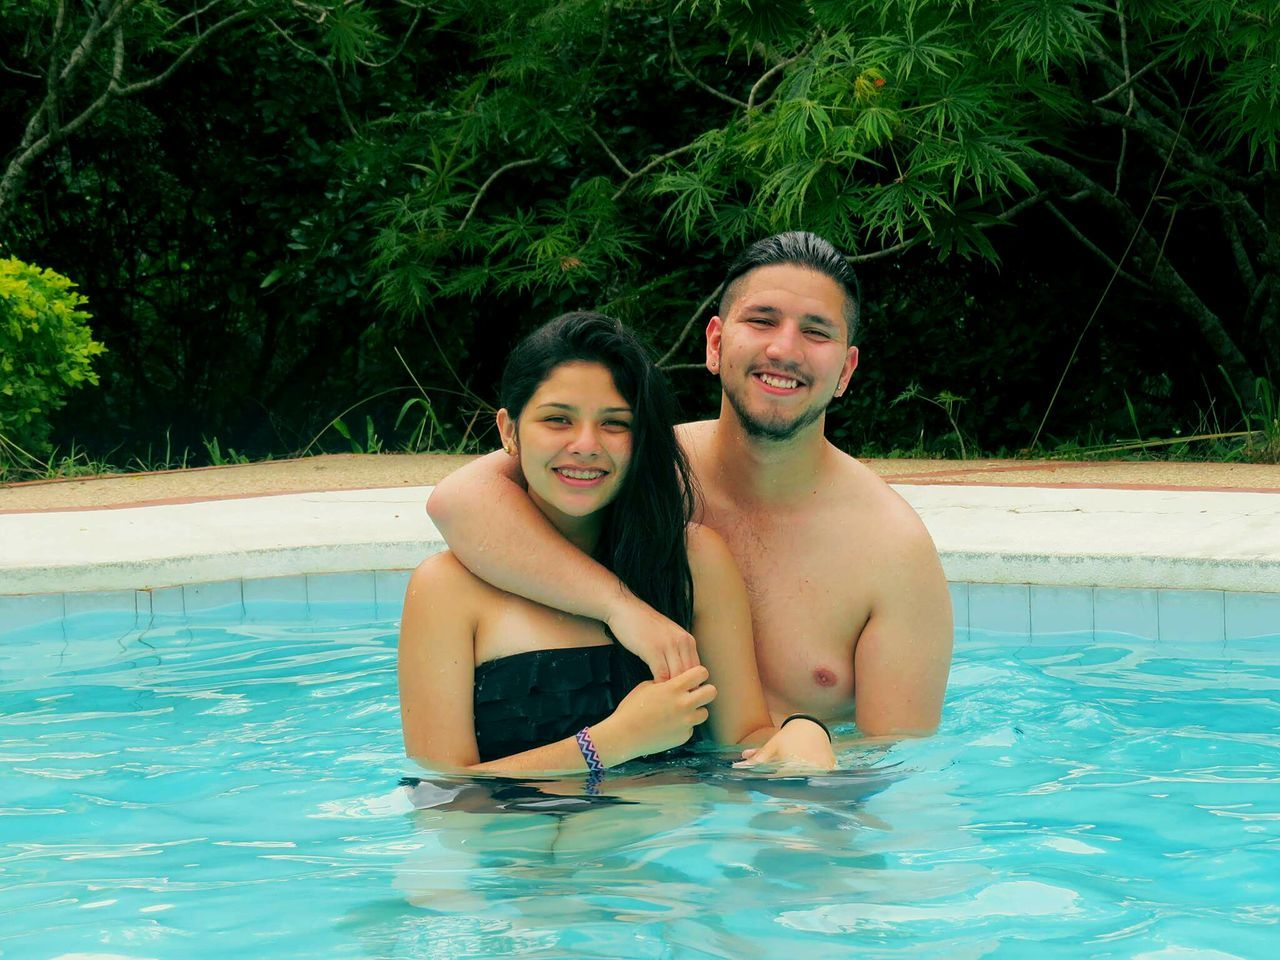 swimming pool, smiling, water, happiness, two people, looking at camera, leisure activity, togetherness, real people, portrait, cheerful, toothy smile, lifestyles, love, young men, young adult, young women, mid adult men, front view, bonding, fun, outdoors, shirtless, day, enjoyment, boys, vacations, nature, people